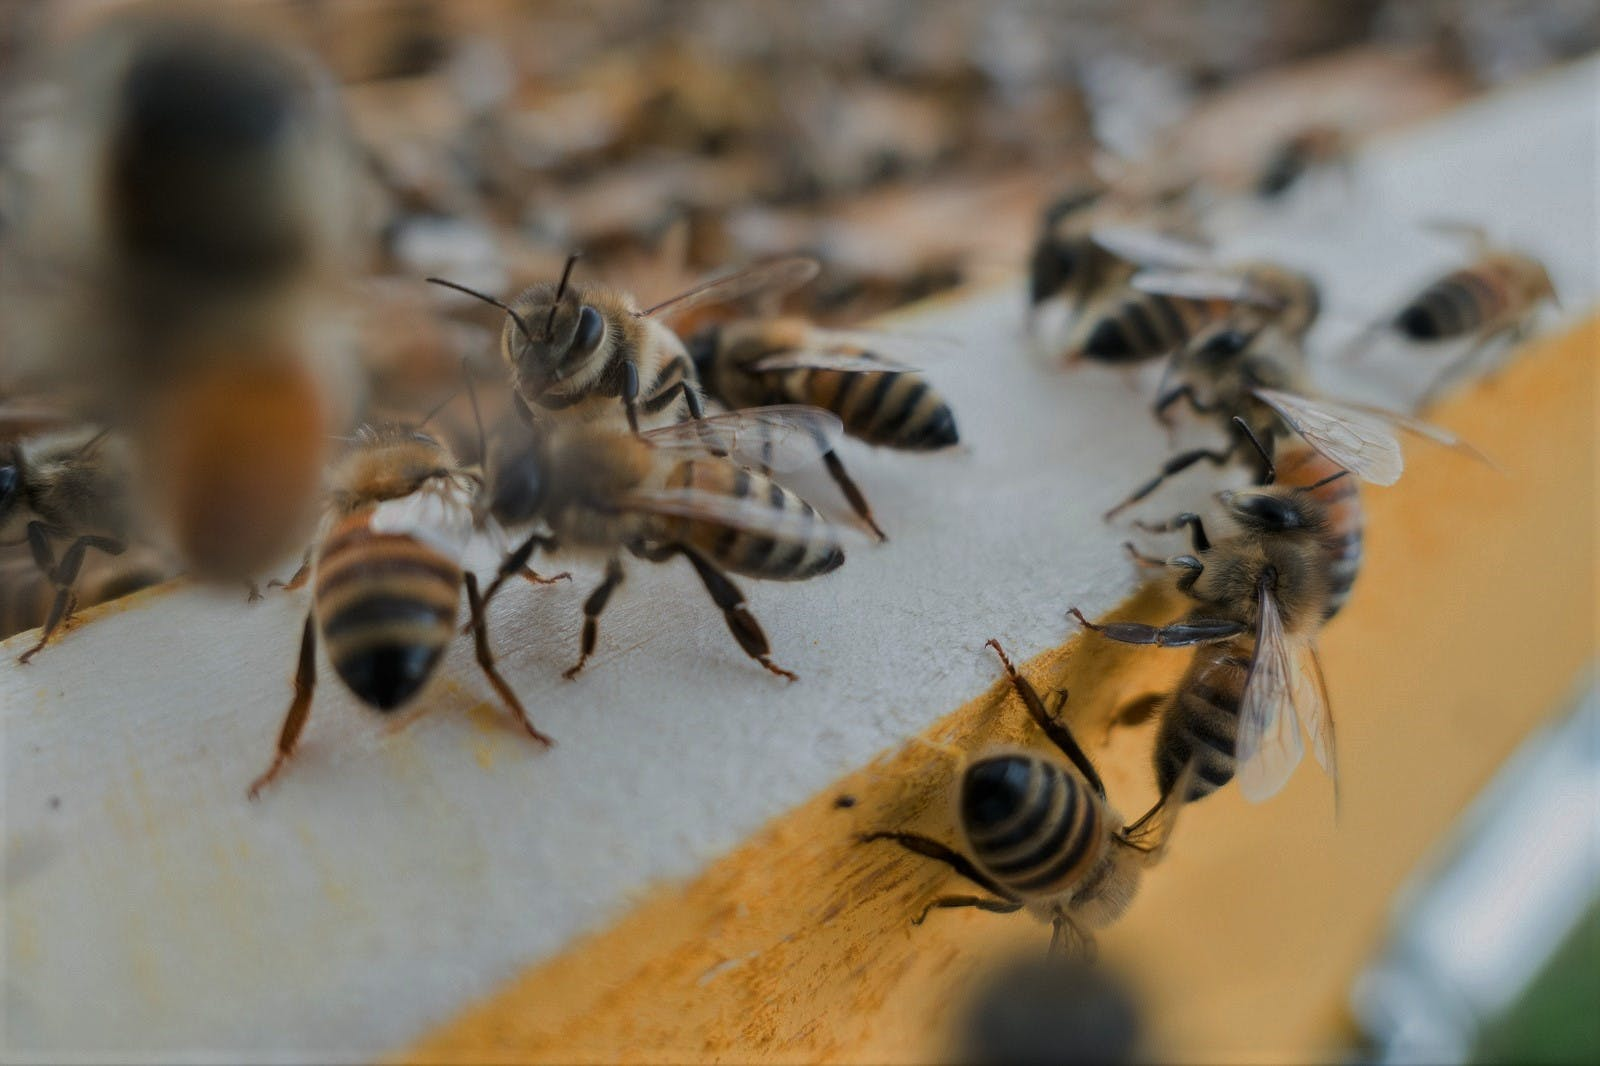 A close up photograph of honey bees returning to their hive.